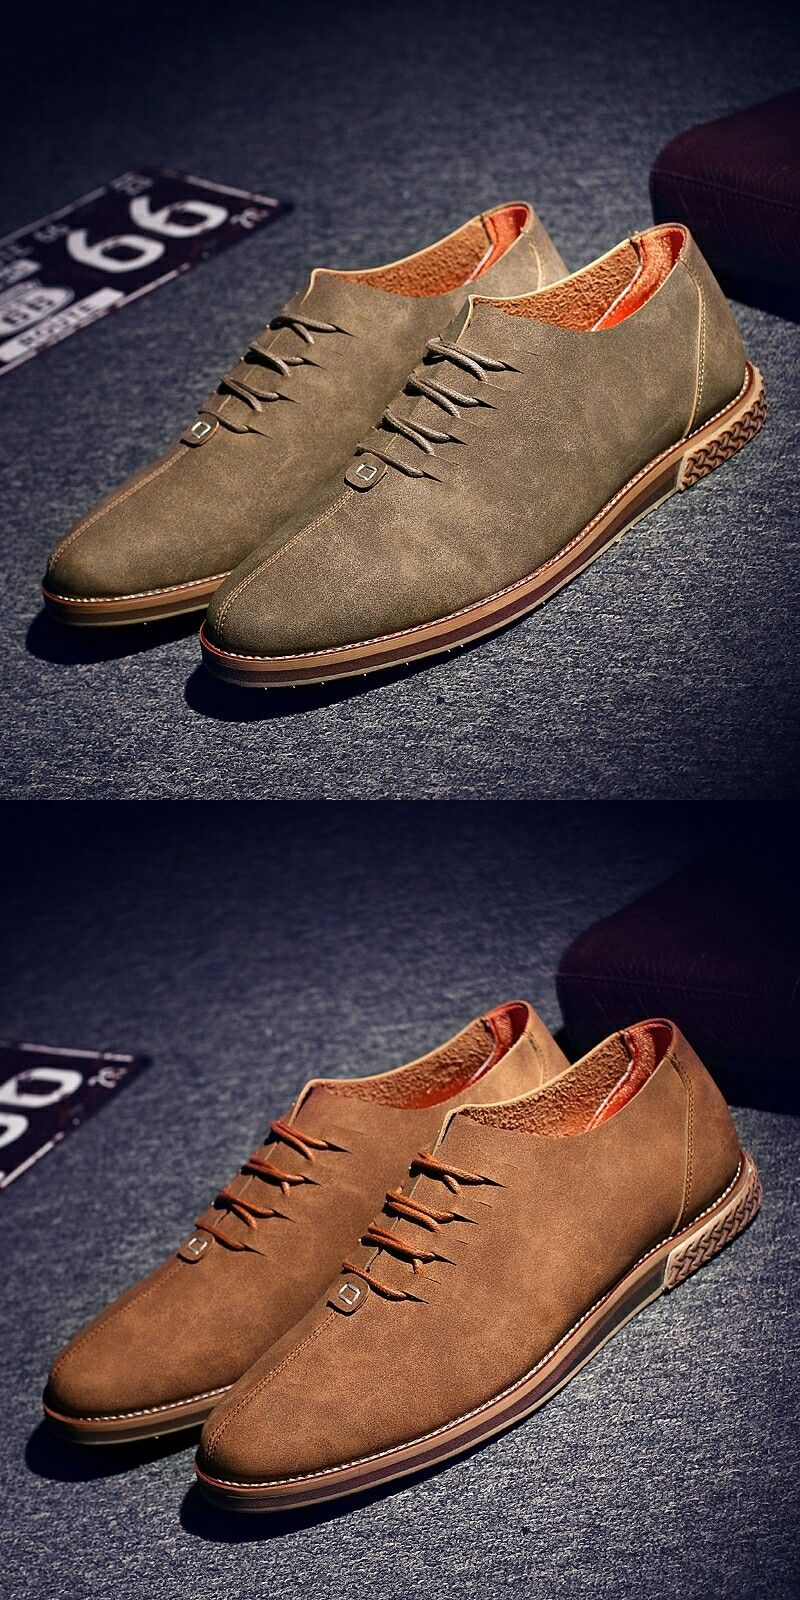 New Arrival Men Casual Shoes Italian Shoes Man Flats Shoes Fashion Suede  Anti Slip Lace-Up Oxford Moccasins Plus Size Shoes 836f5e5141fa